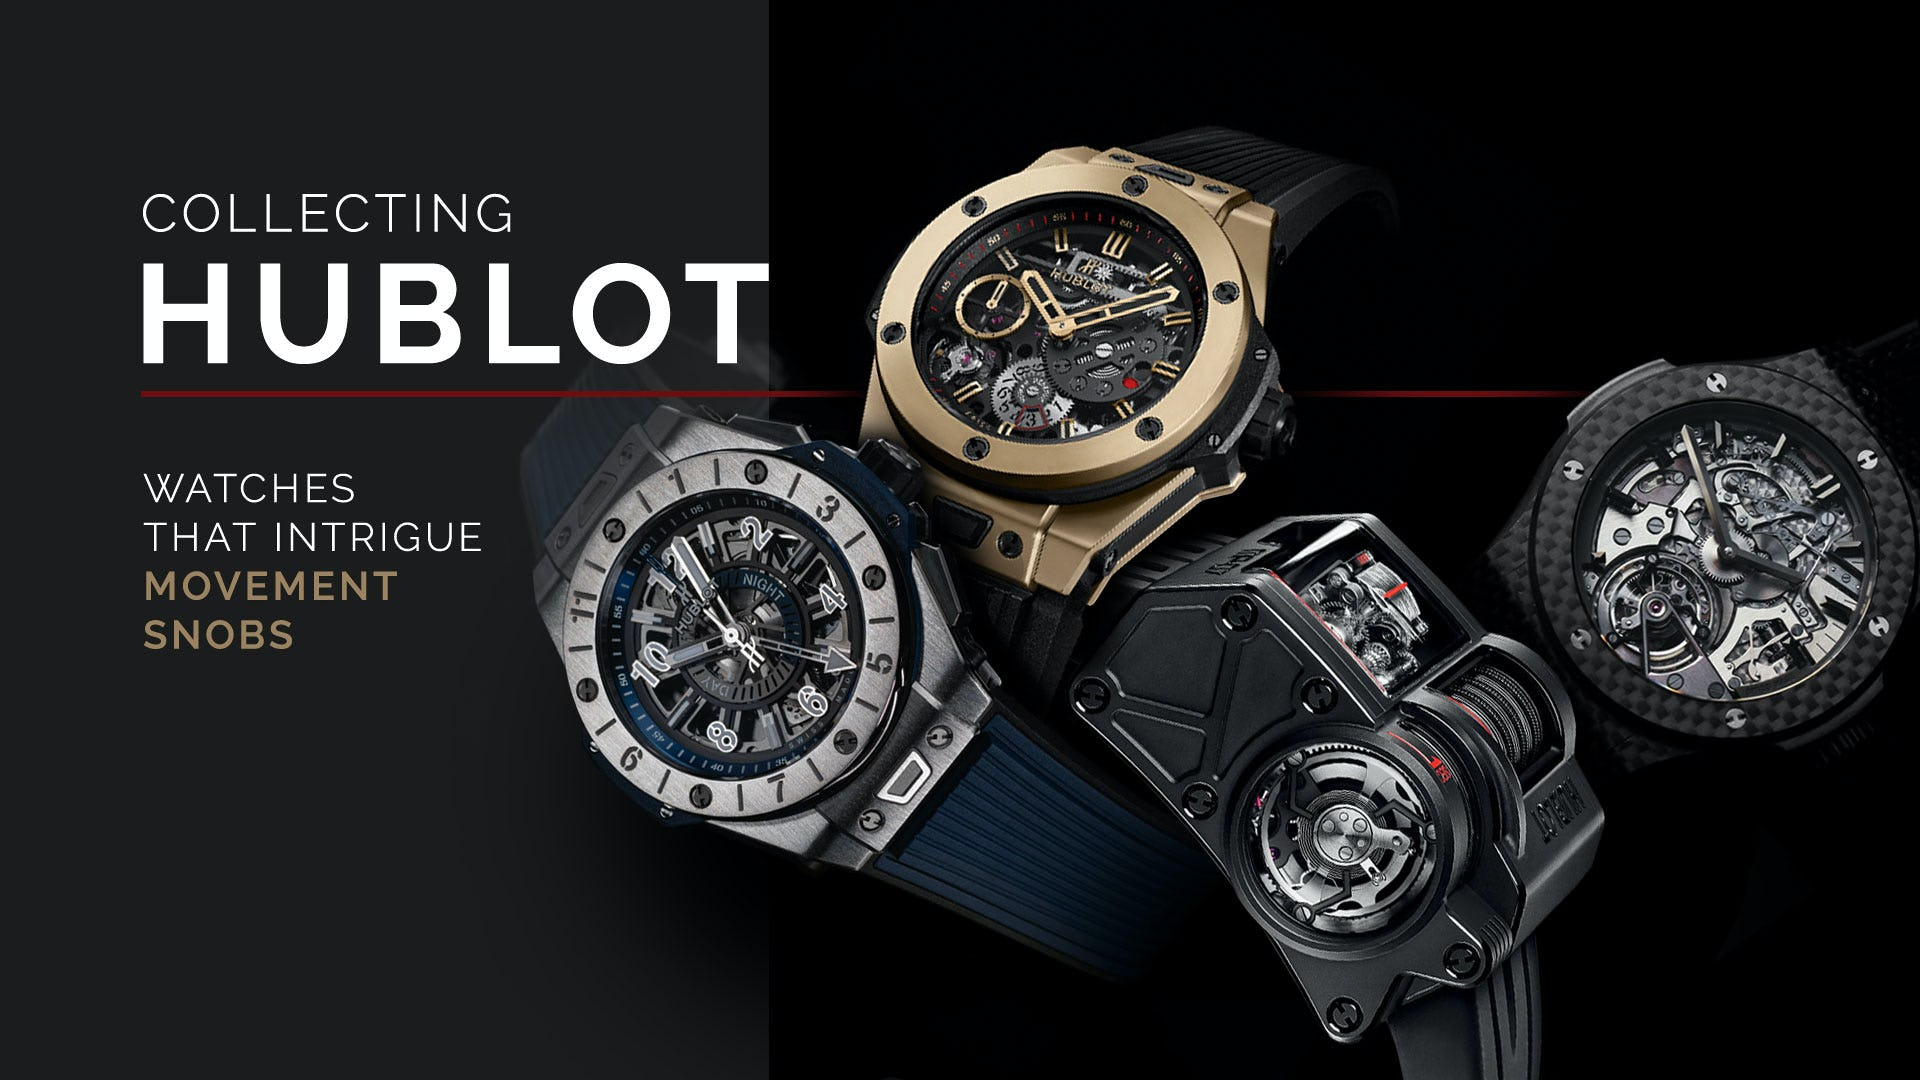 Hublot Collecting for Movement Snobs